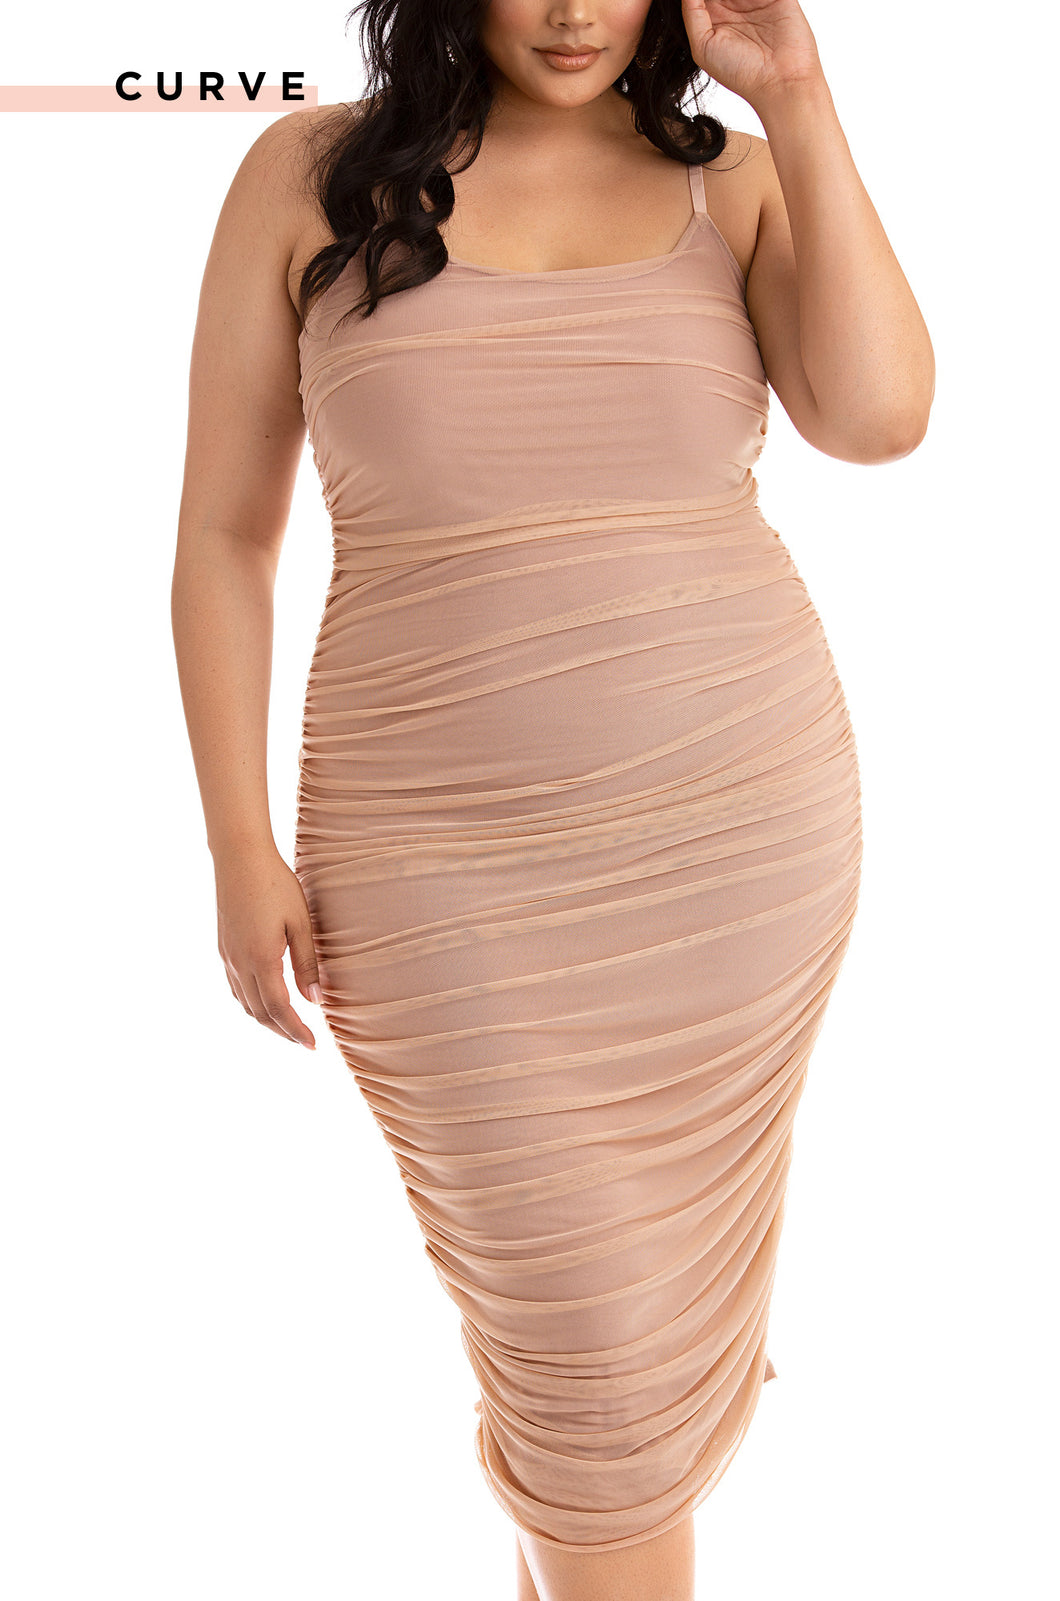 Model Behavior Dress - Nude